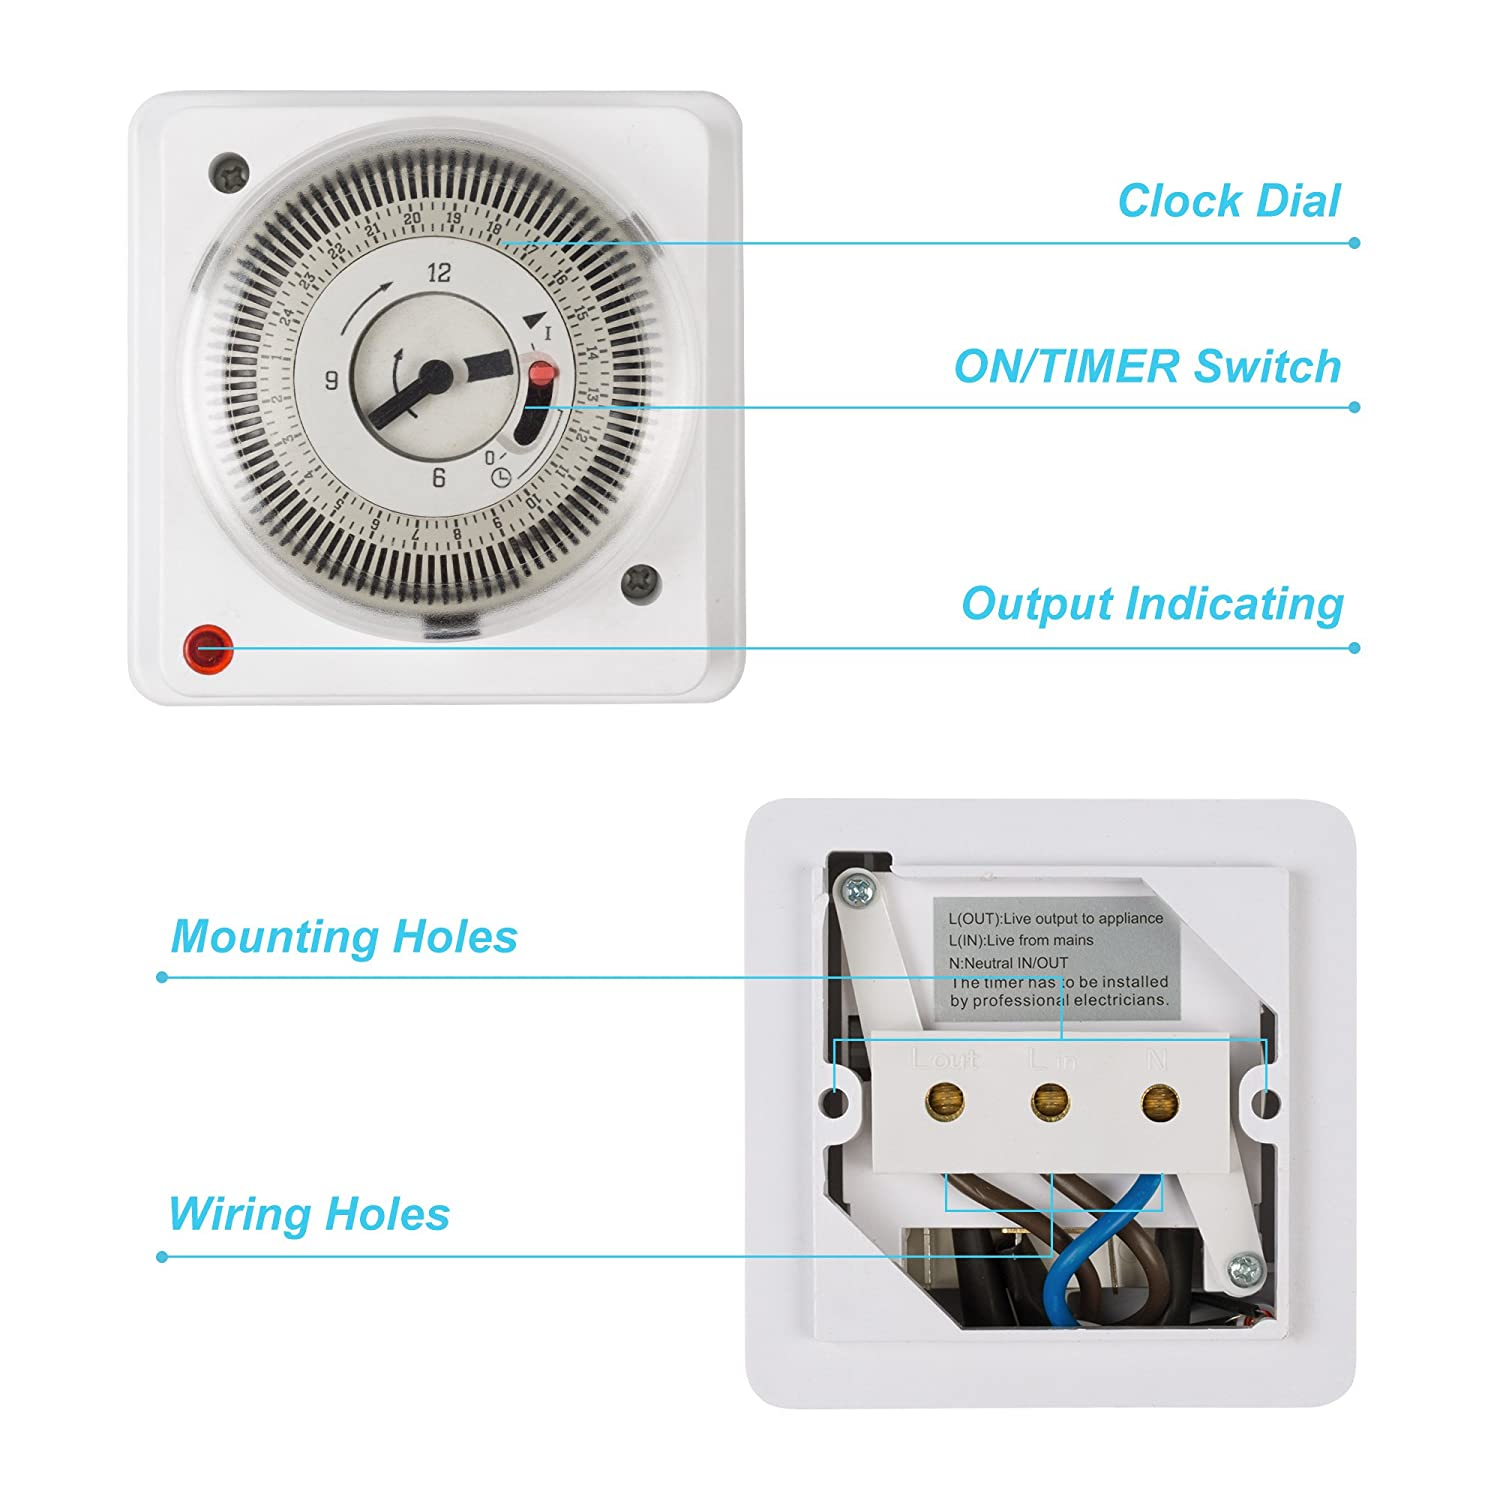 Hbn 24 Hour Indoor Energy Saving Mechanical Immersion Heater Segment Wiring A Timer Switch Lighting